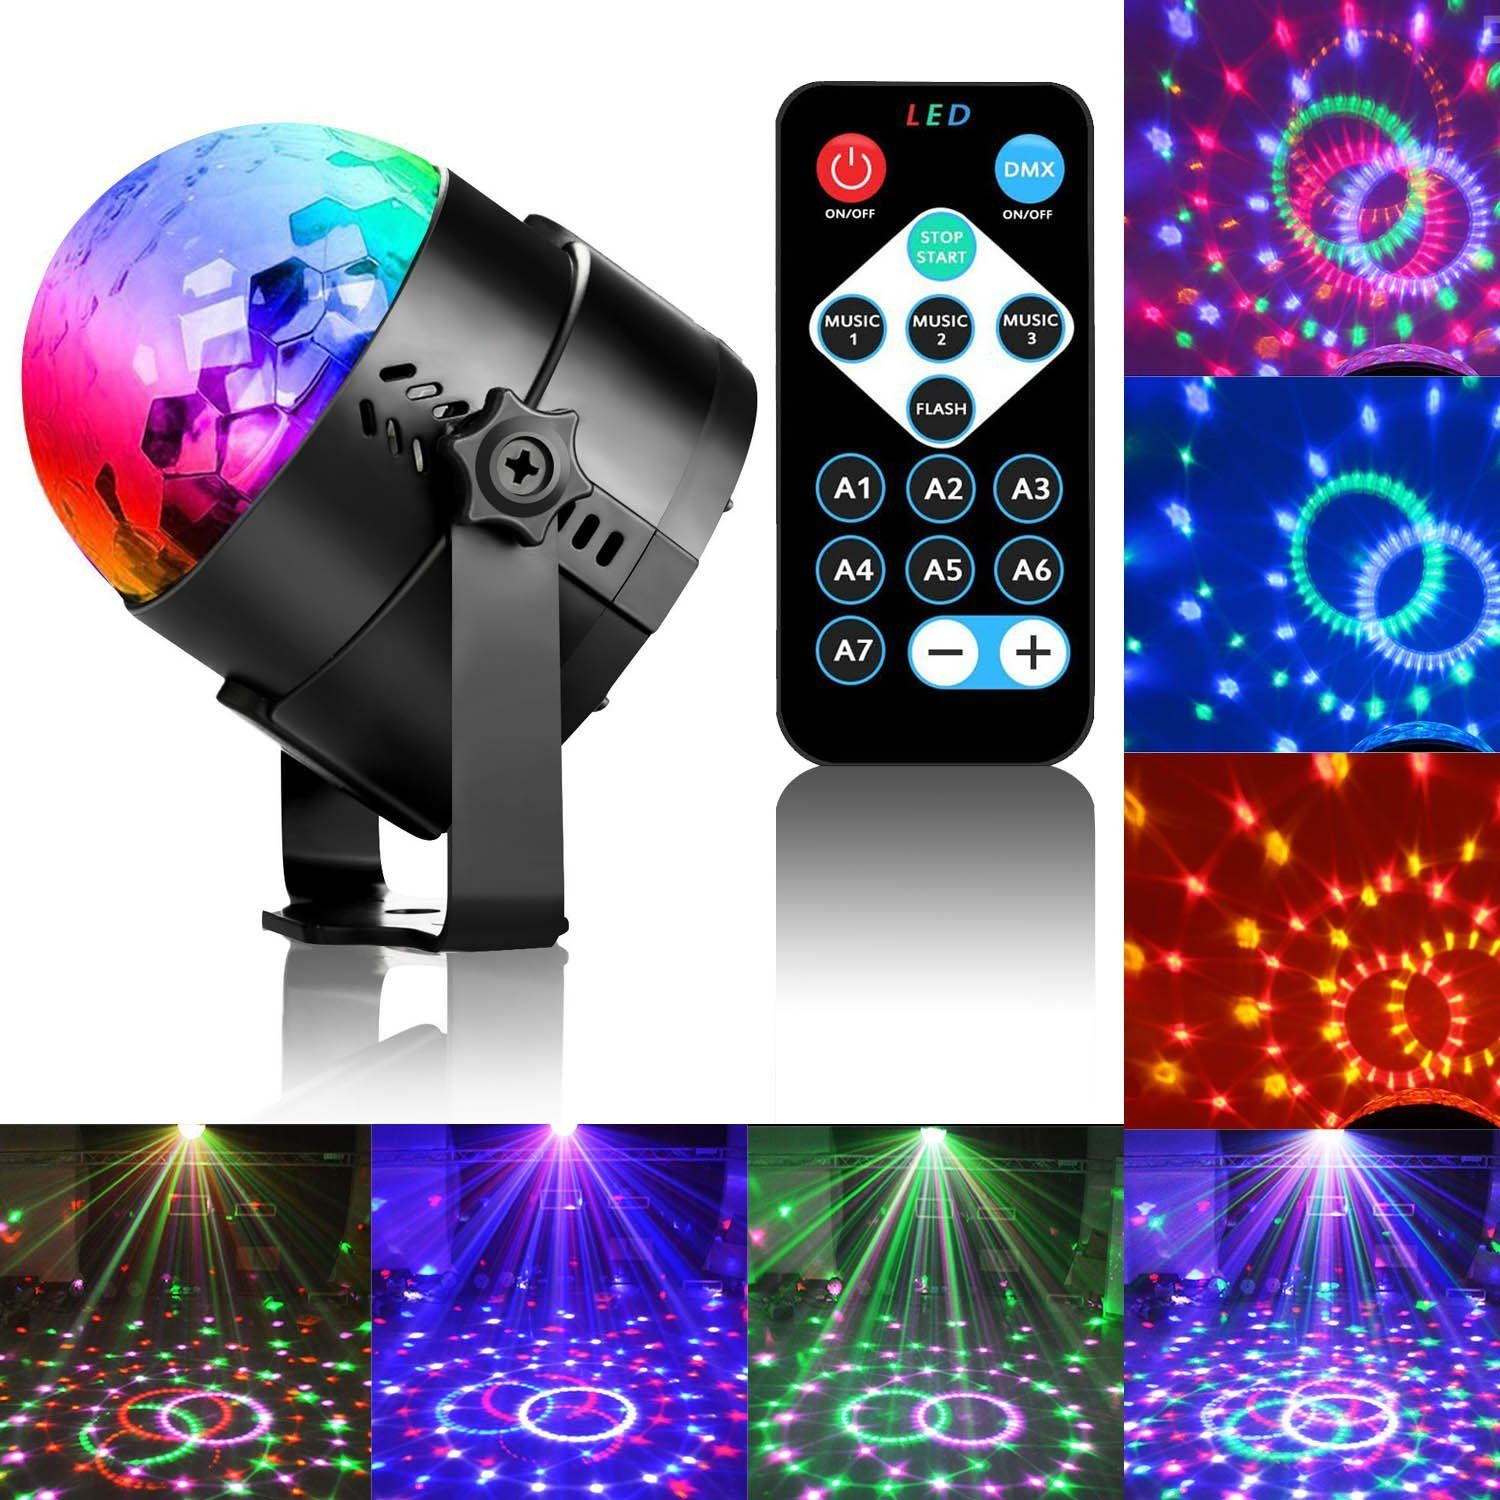 Disco Ball Led Party Dj Lights With Remote Control Rbg Strobe Lamp 7 Modes Stage Light For Christmas Parties Wedding Outdoor Decorations